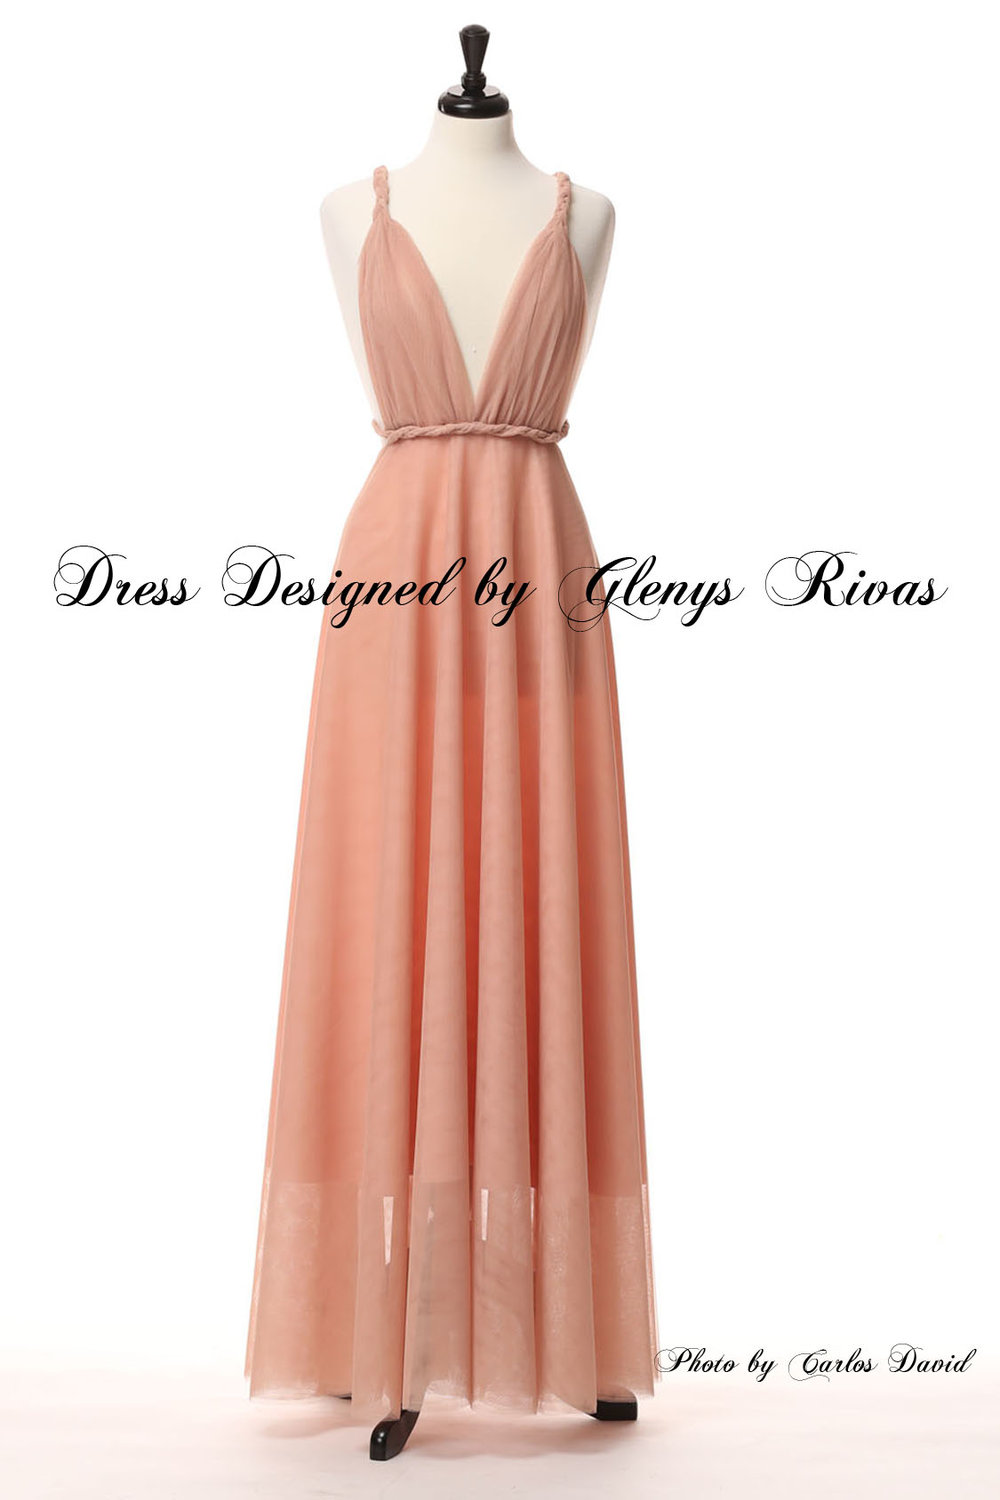 Glenys Dress No. 2.jpg